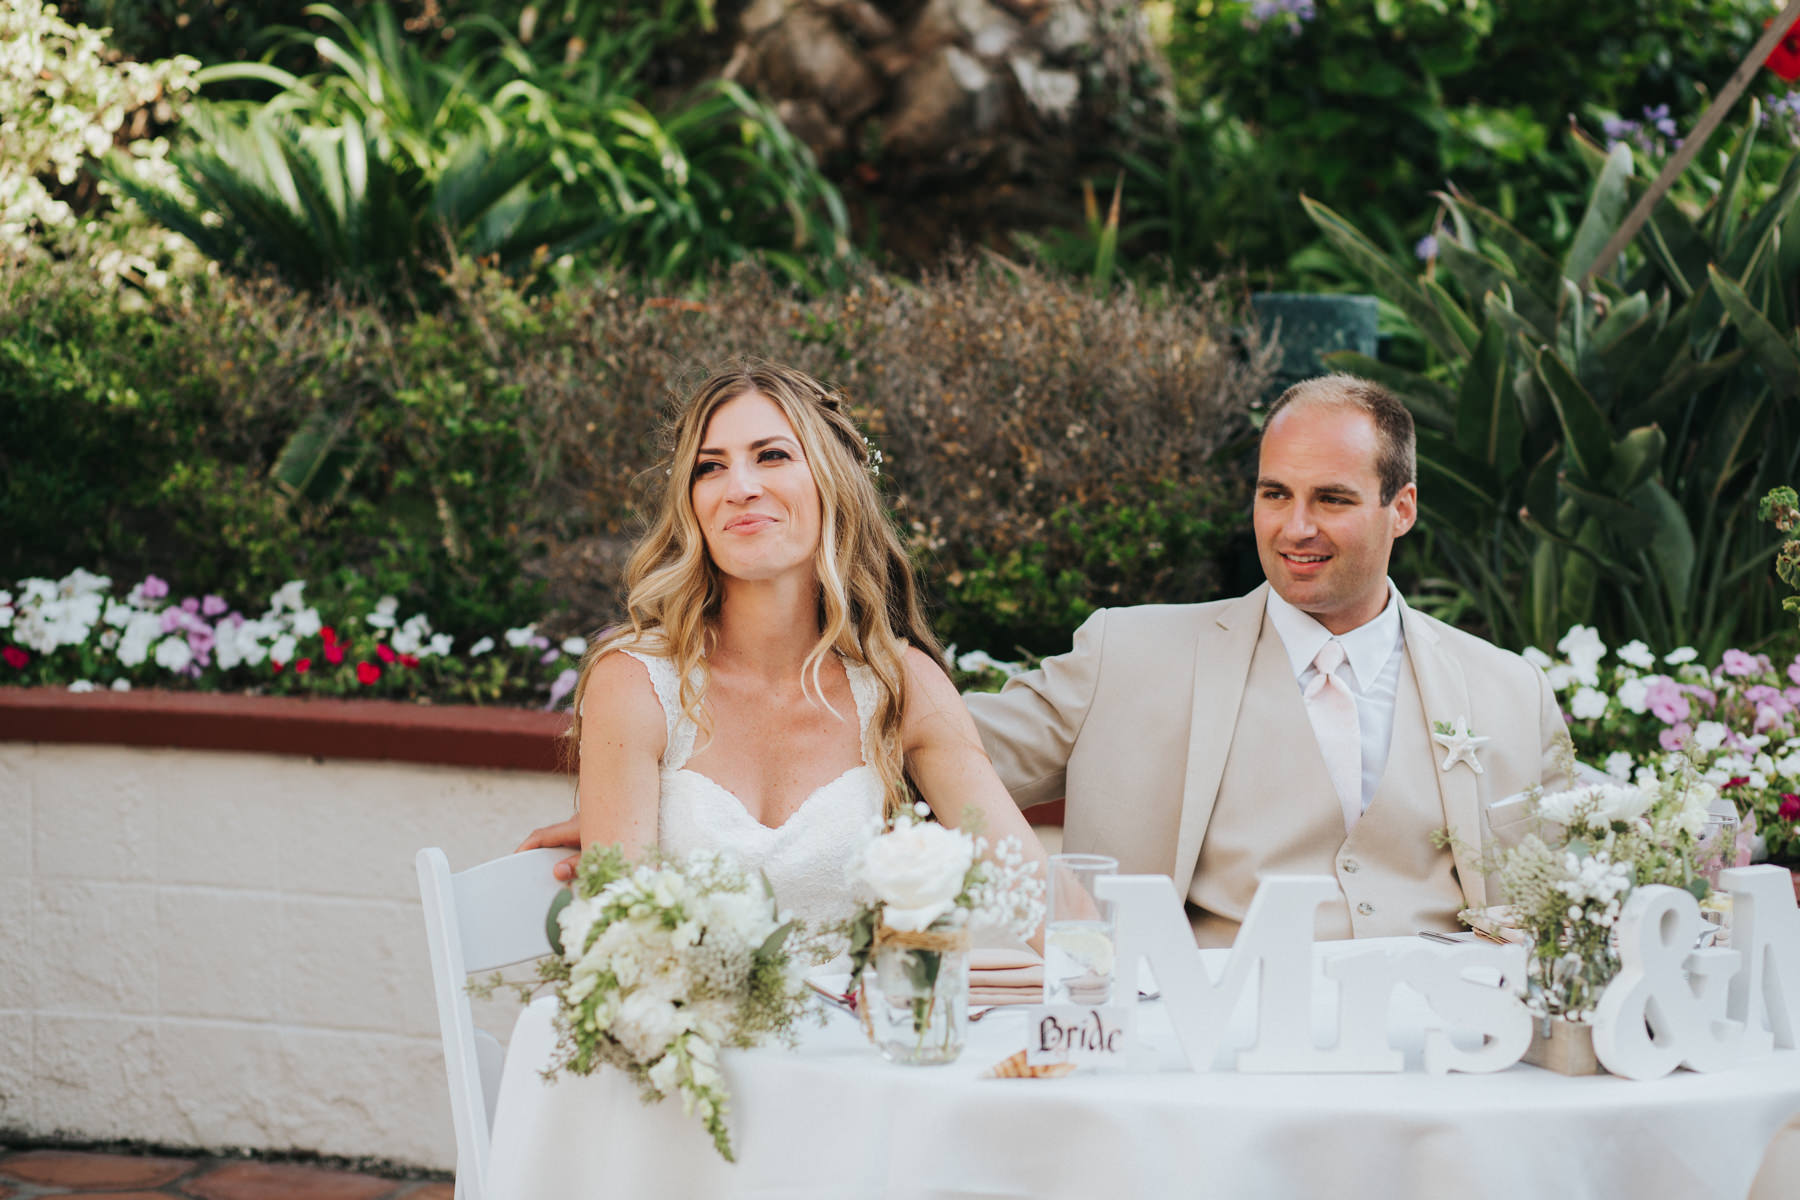 Hotel Laguna Beach Wedding Elopement San Diego OC Portrait + Wedding Photographer Martina Micko Photo _0030